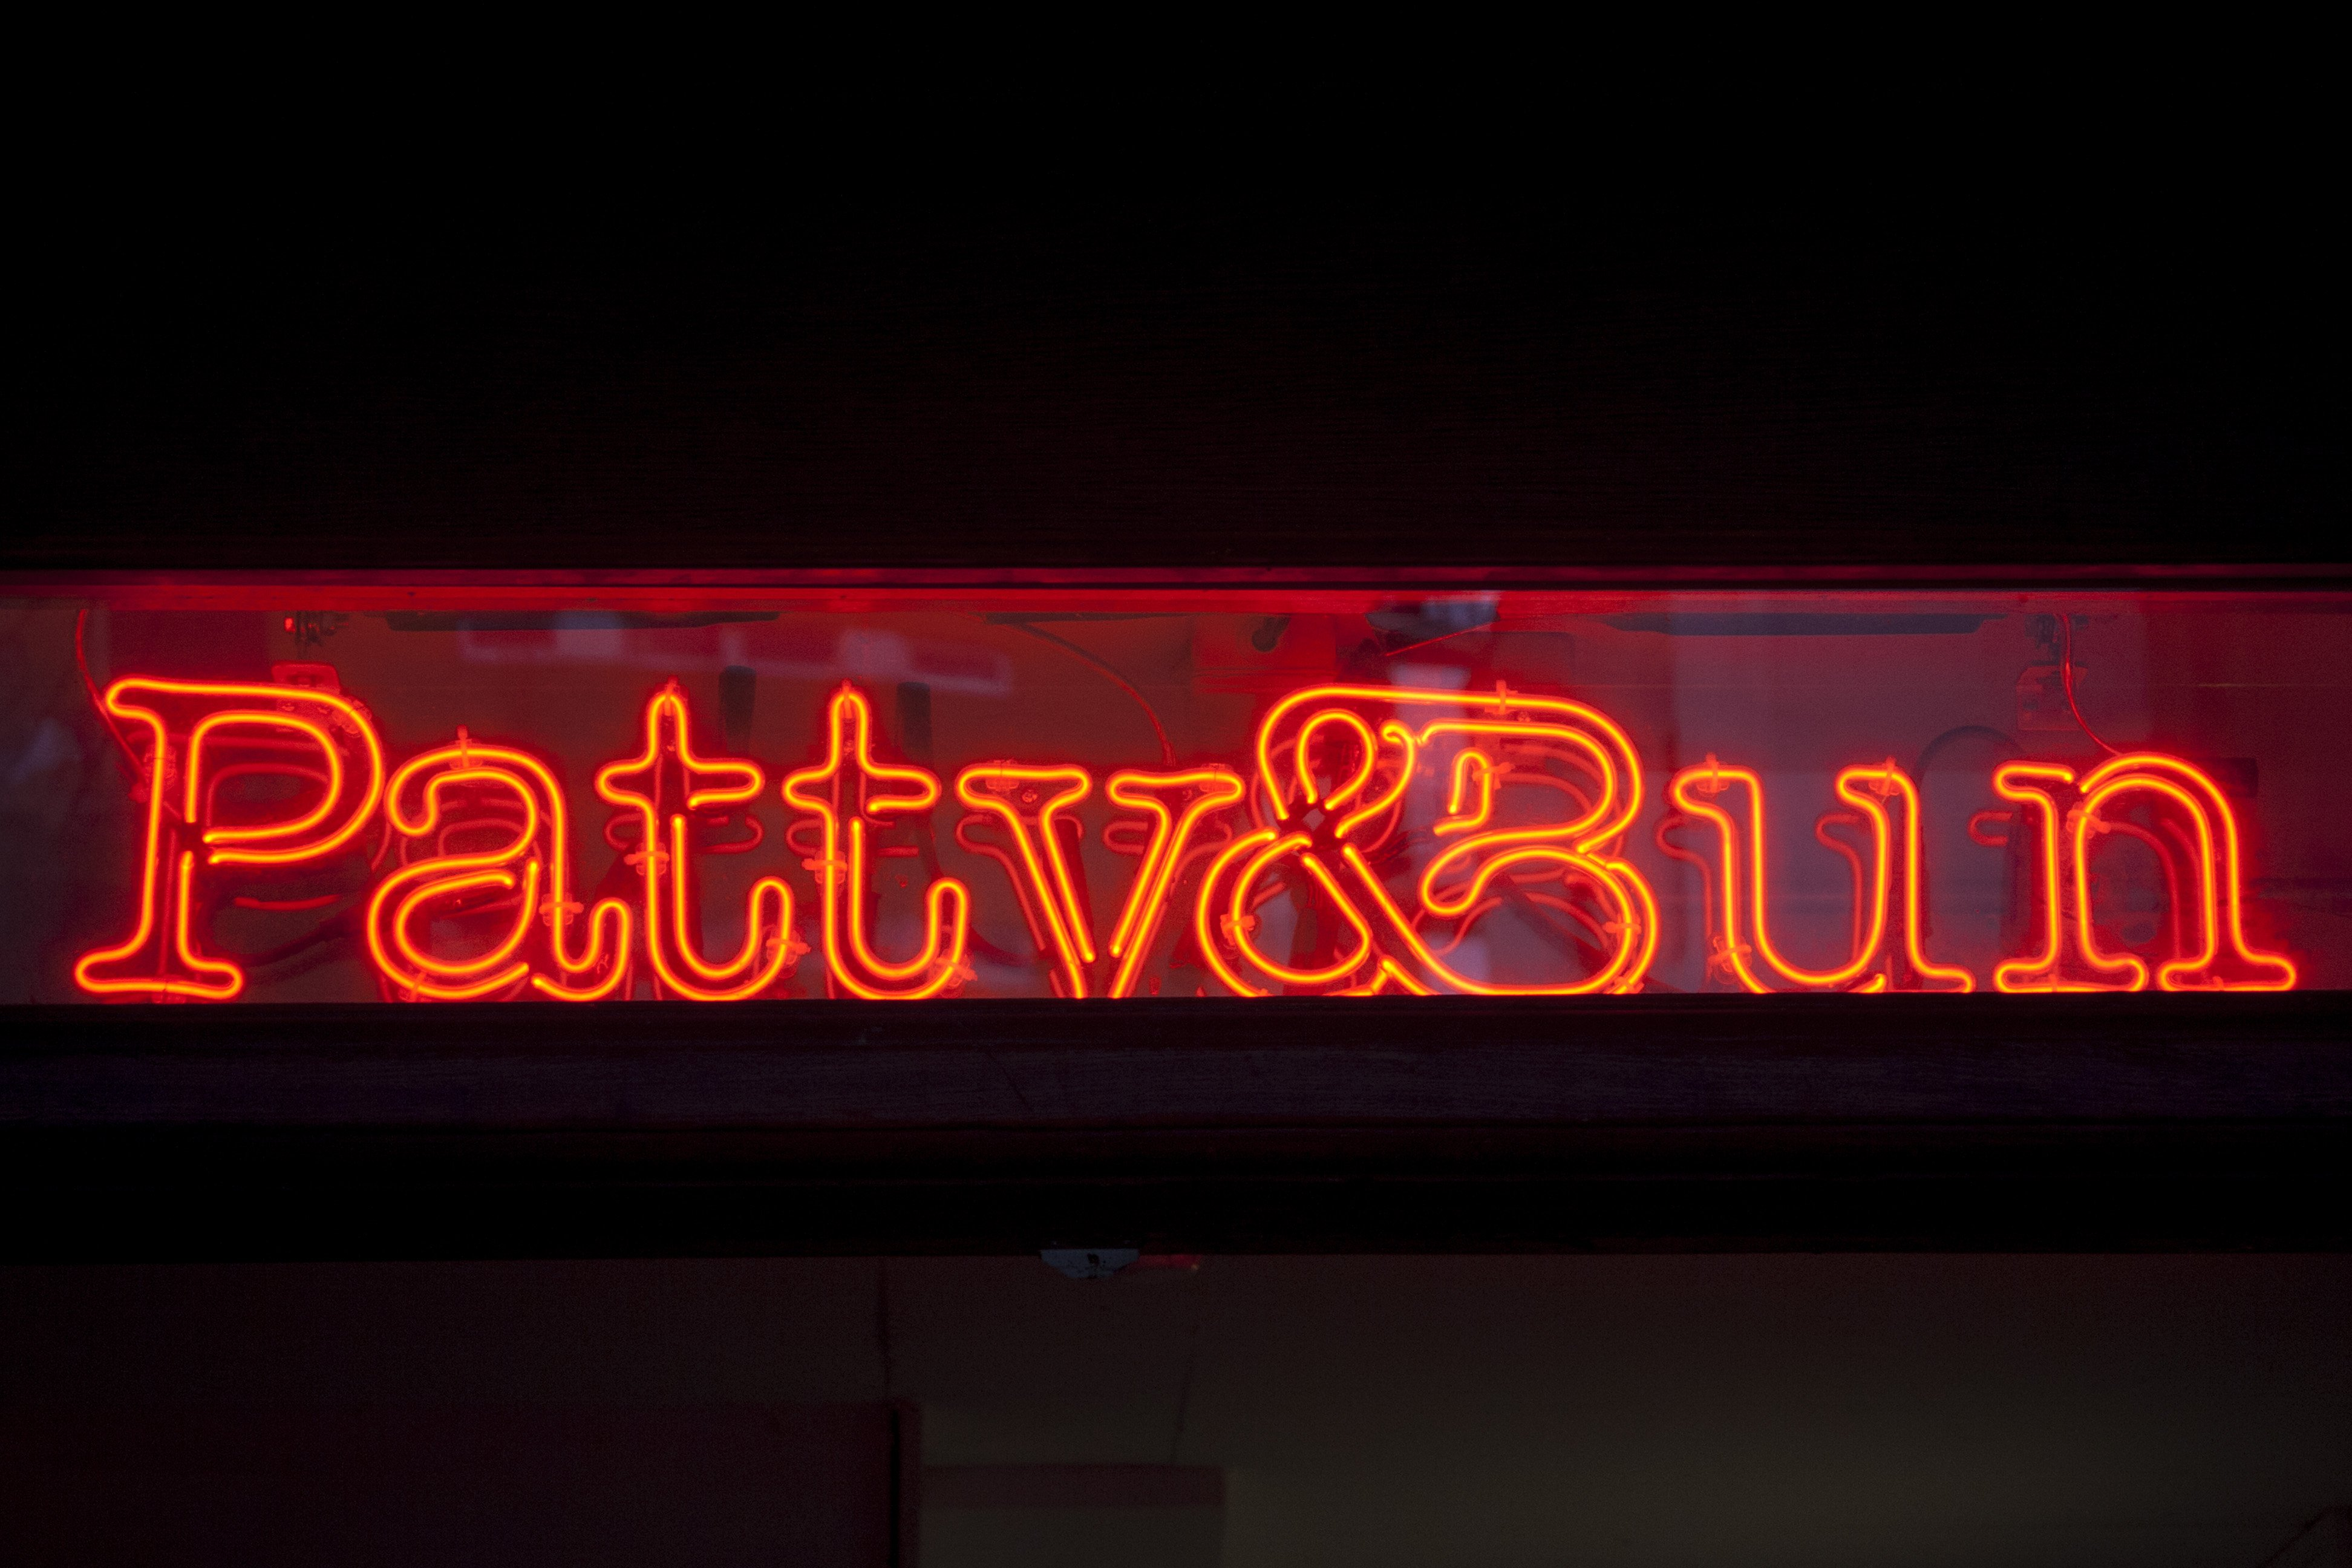 Patty and Bun neon sign